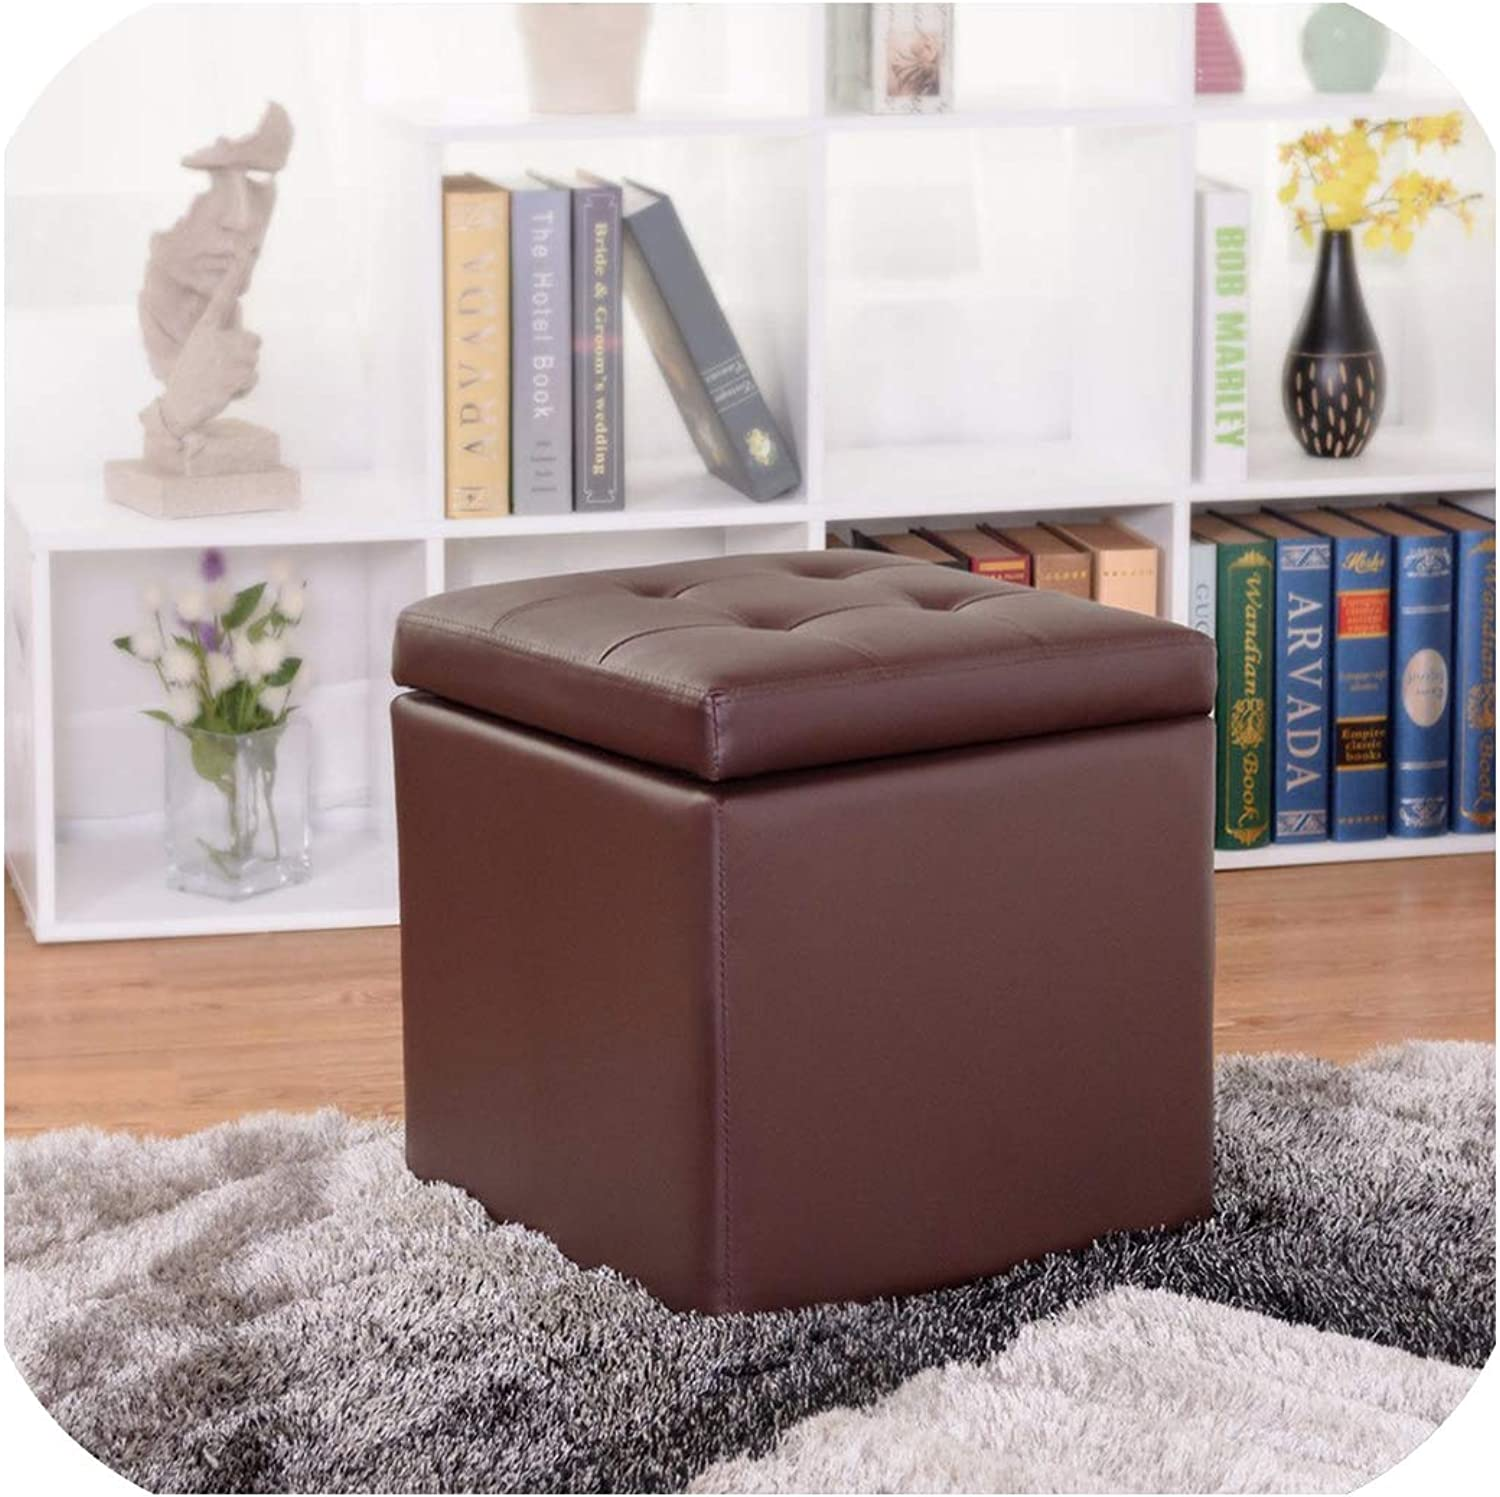 KKK-3boss 16  Storage Box Square Seat Brown Foot Stool Chair Lounge Cube Hinge Top Home Furniture,As Show